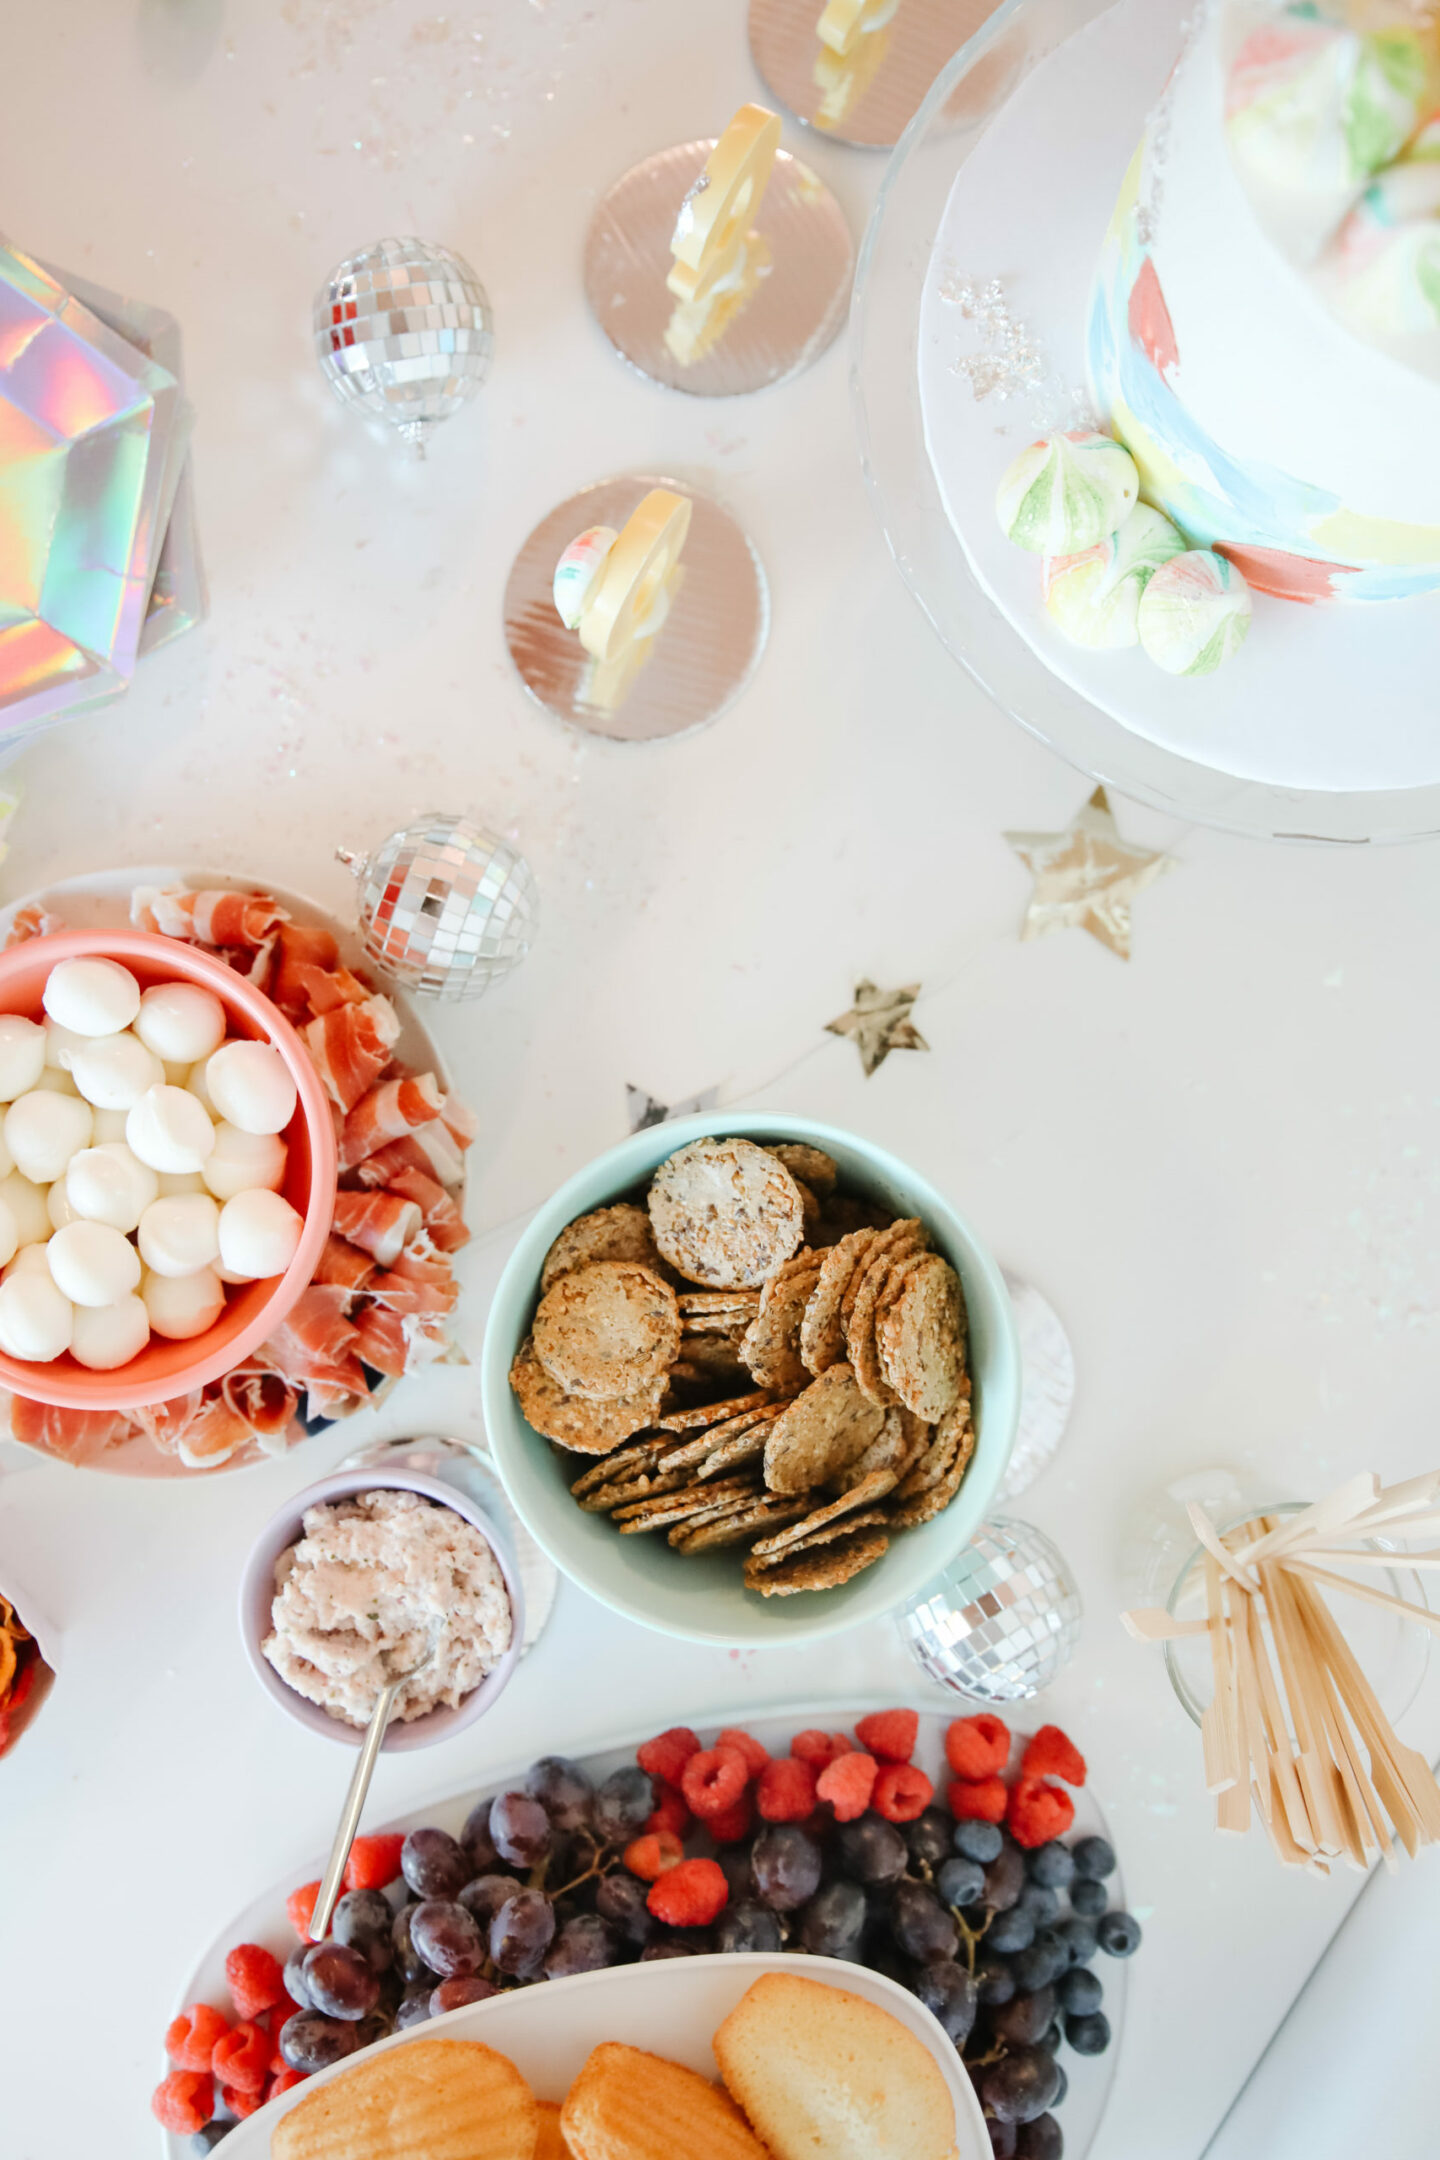 How to decorate a kids party in 3 easy steps